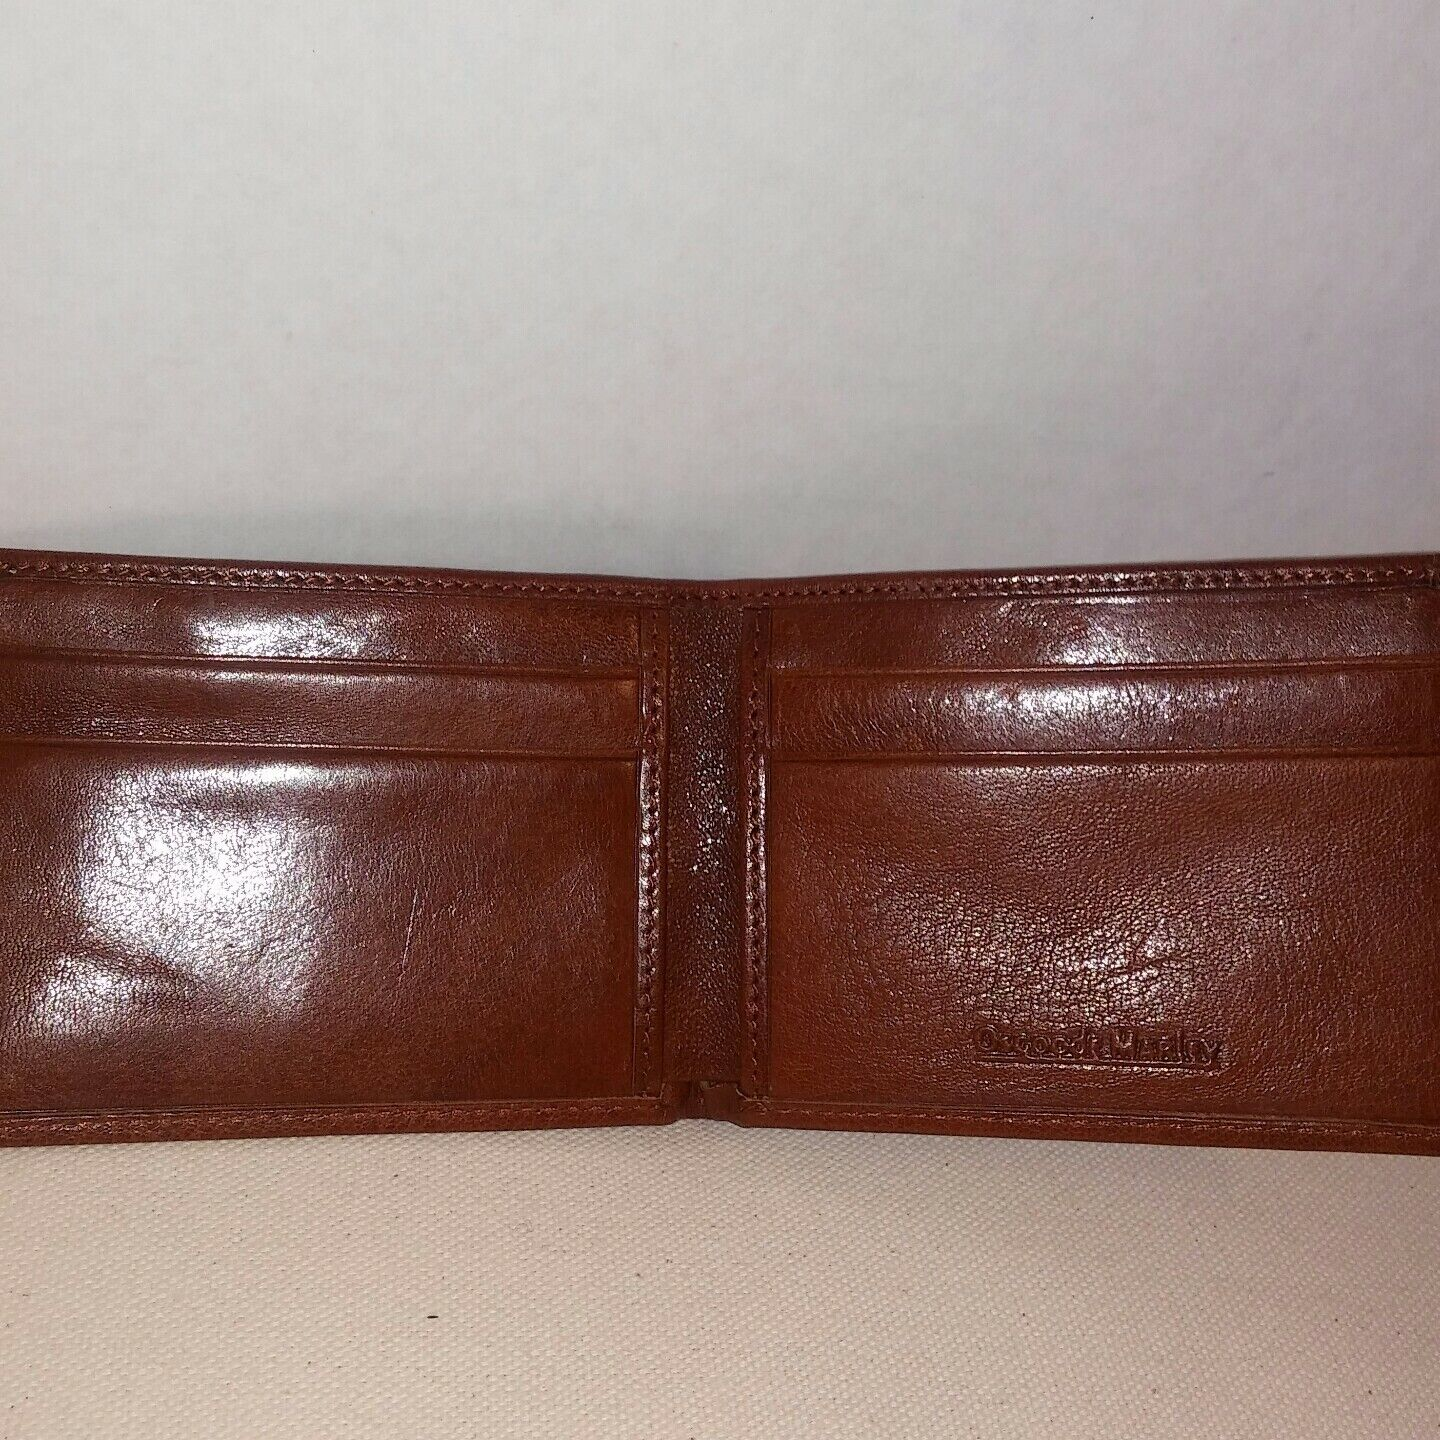 Osgoode marley Small wallet